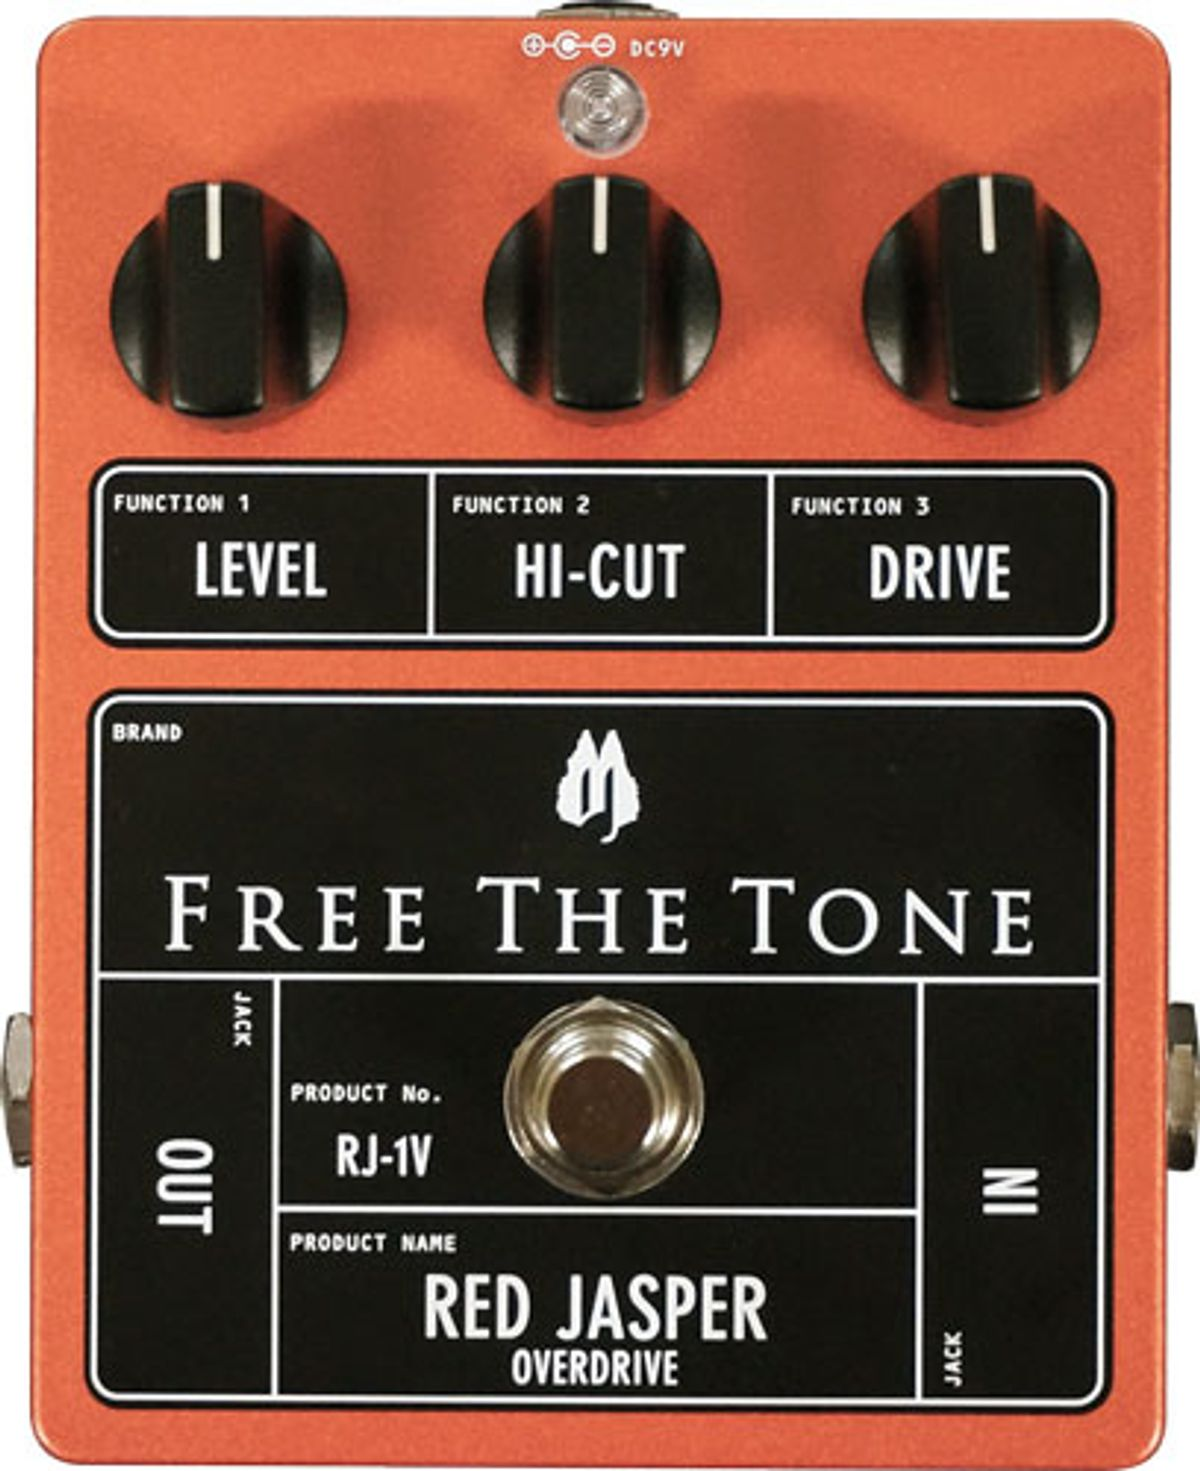 Free The Tone Introduces the Red Jasper Overdrive